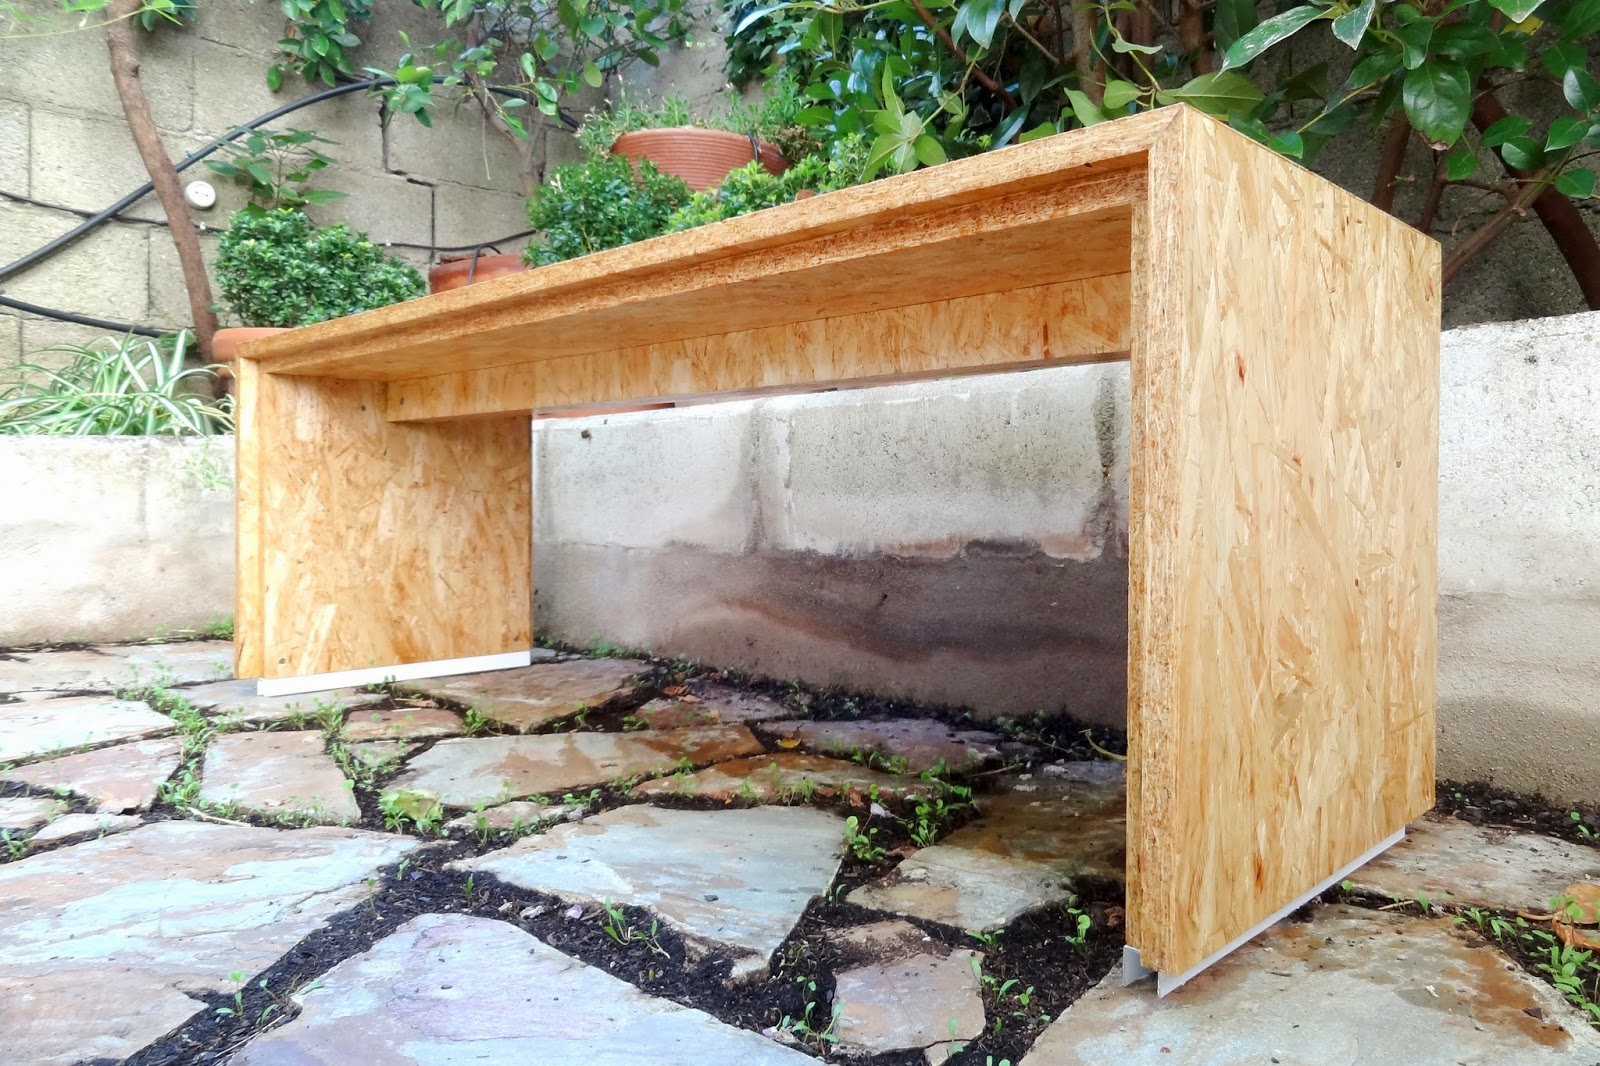 andres gonzalez gil banco osb bank design furniture upcycled upcycling 03